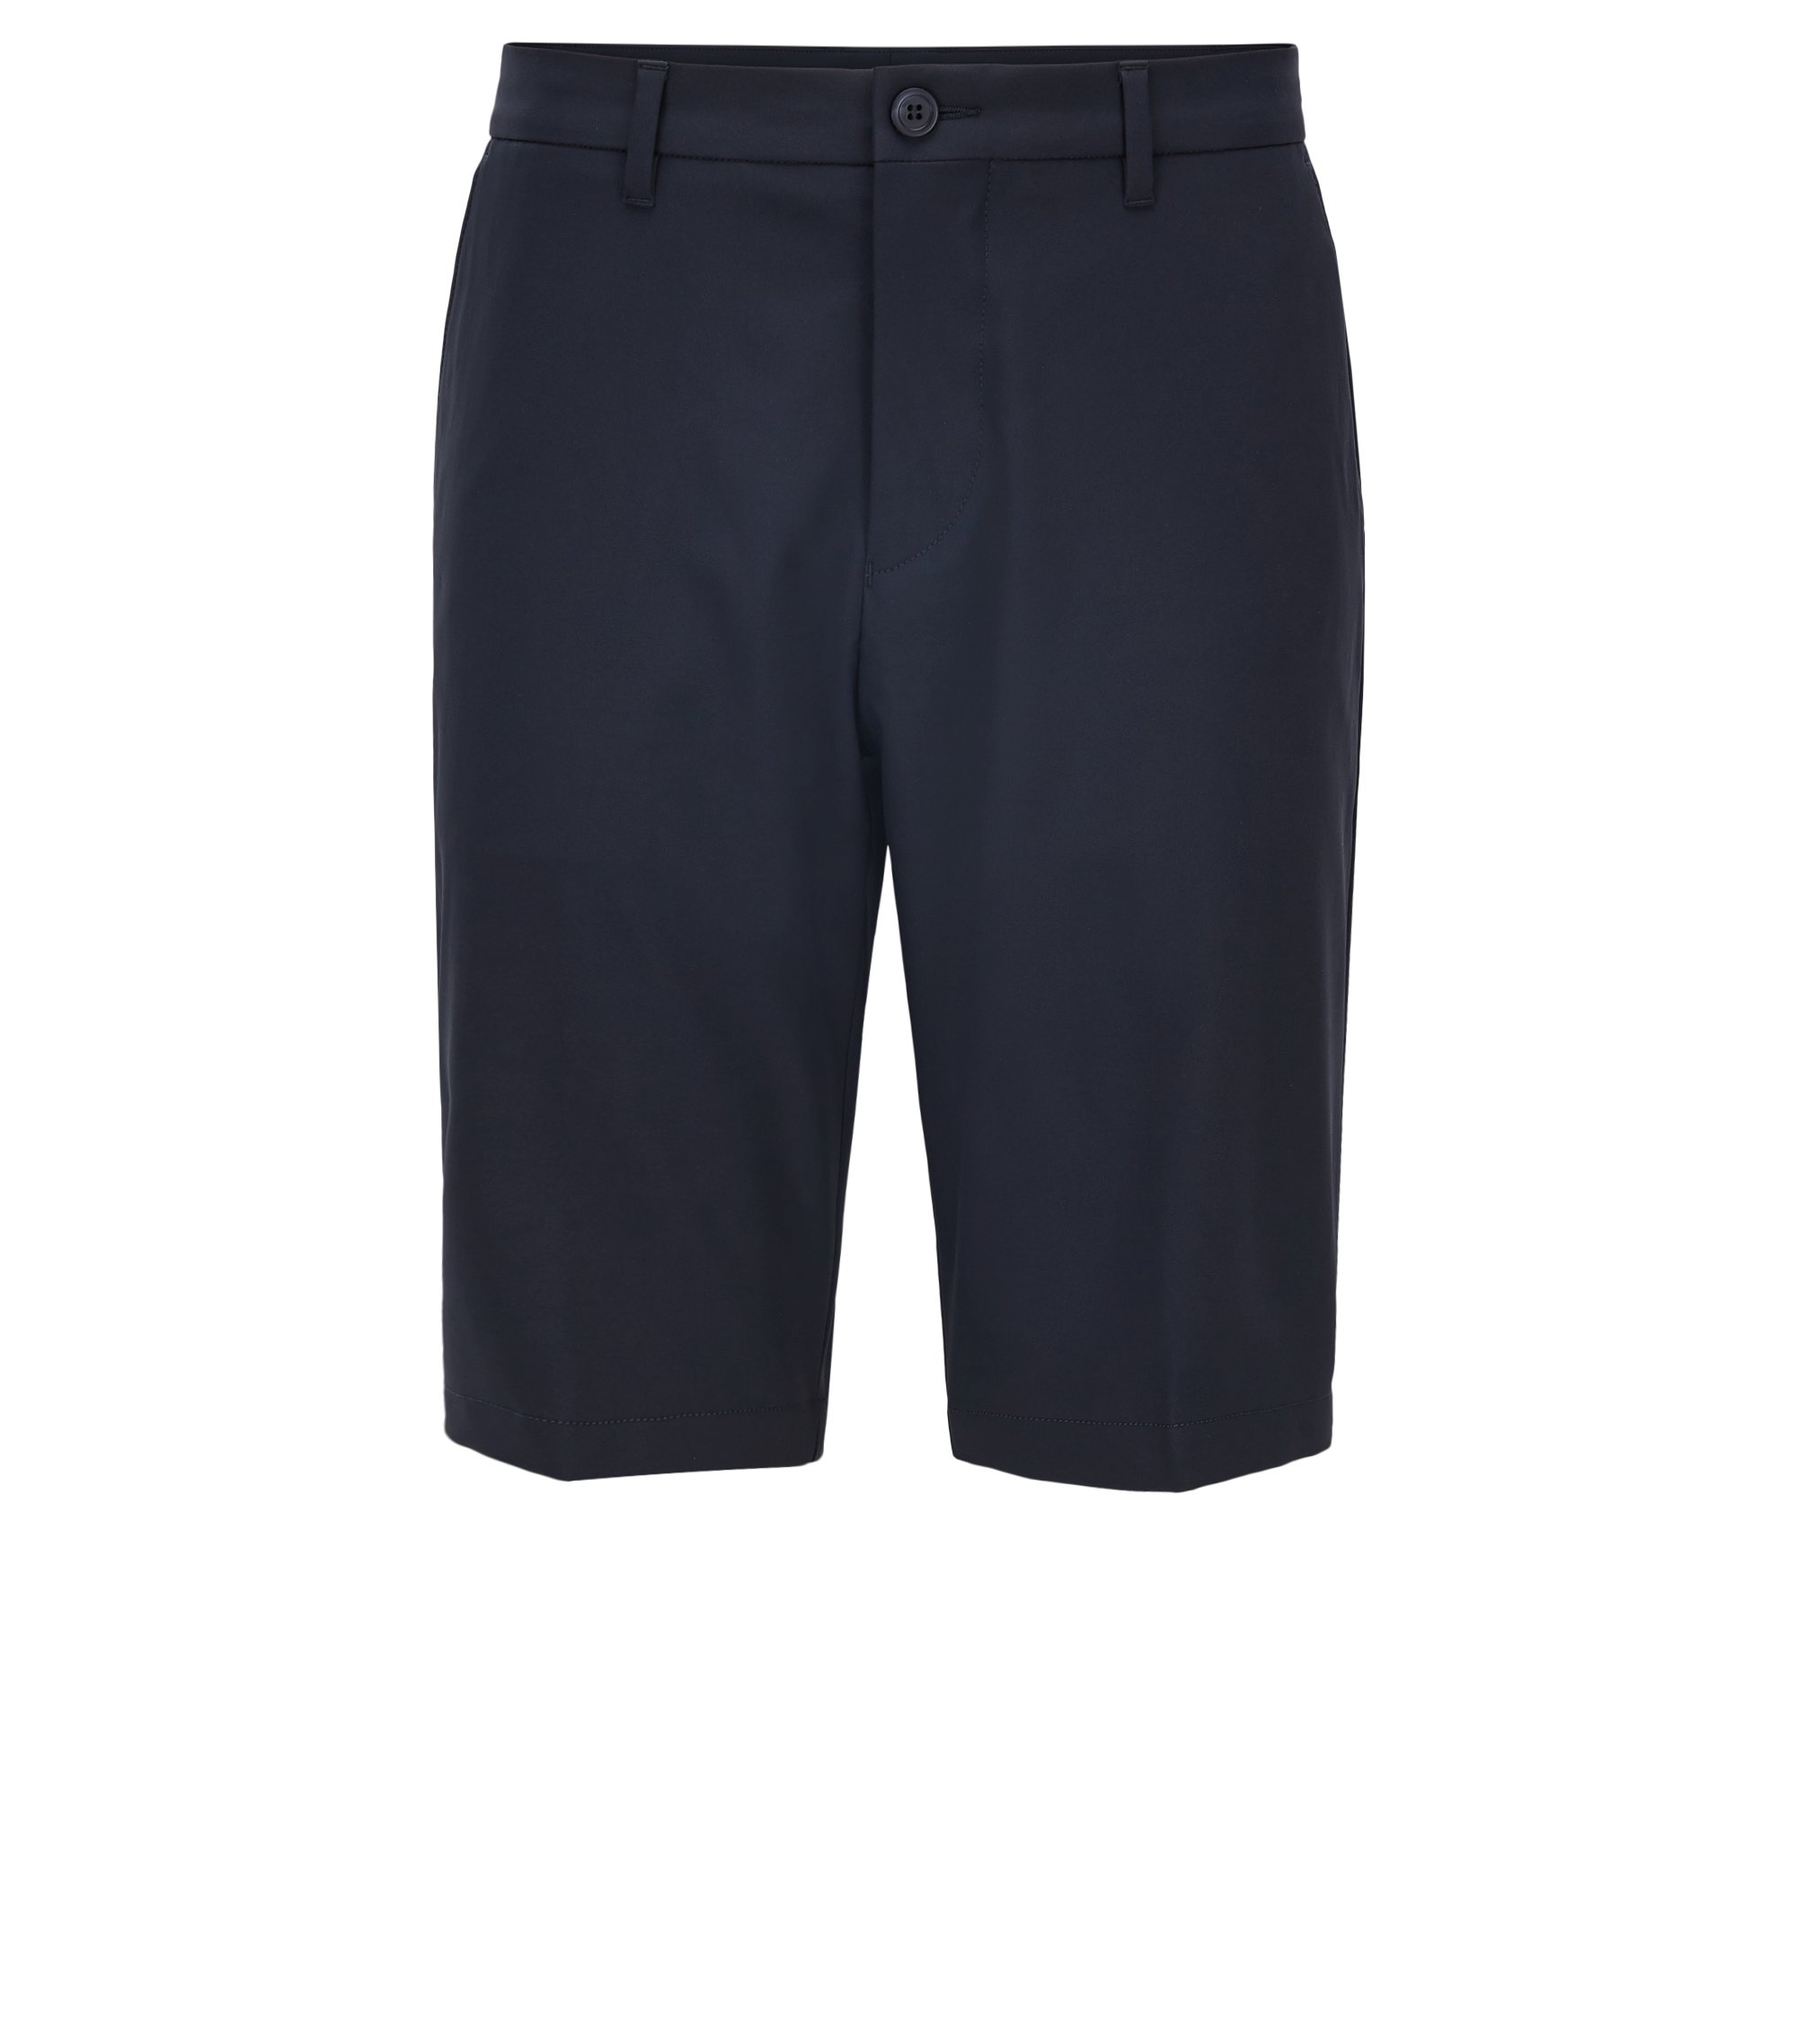 Pantaloncini corti da golf regular fit in twill tecnico, Blu scuro